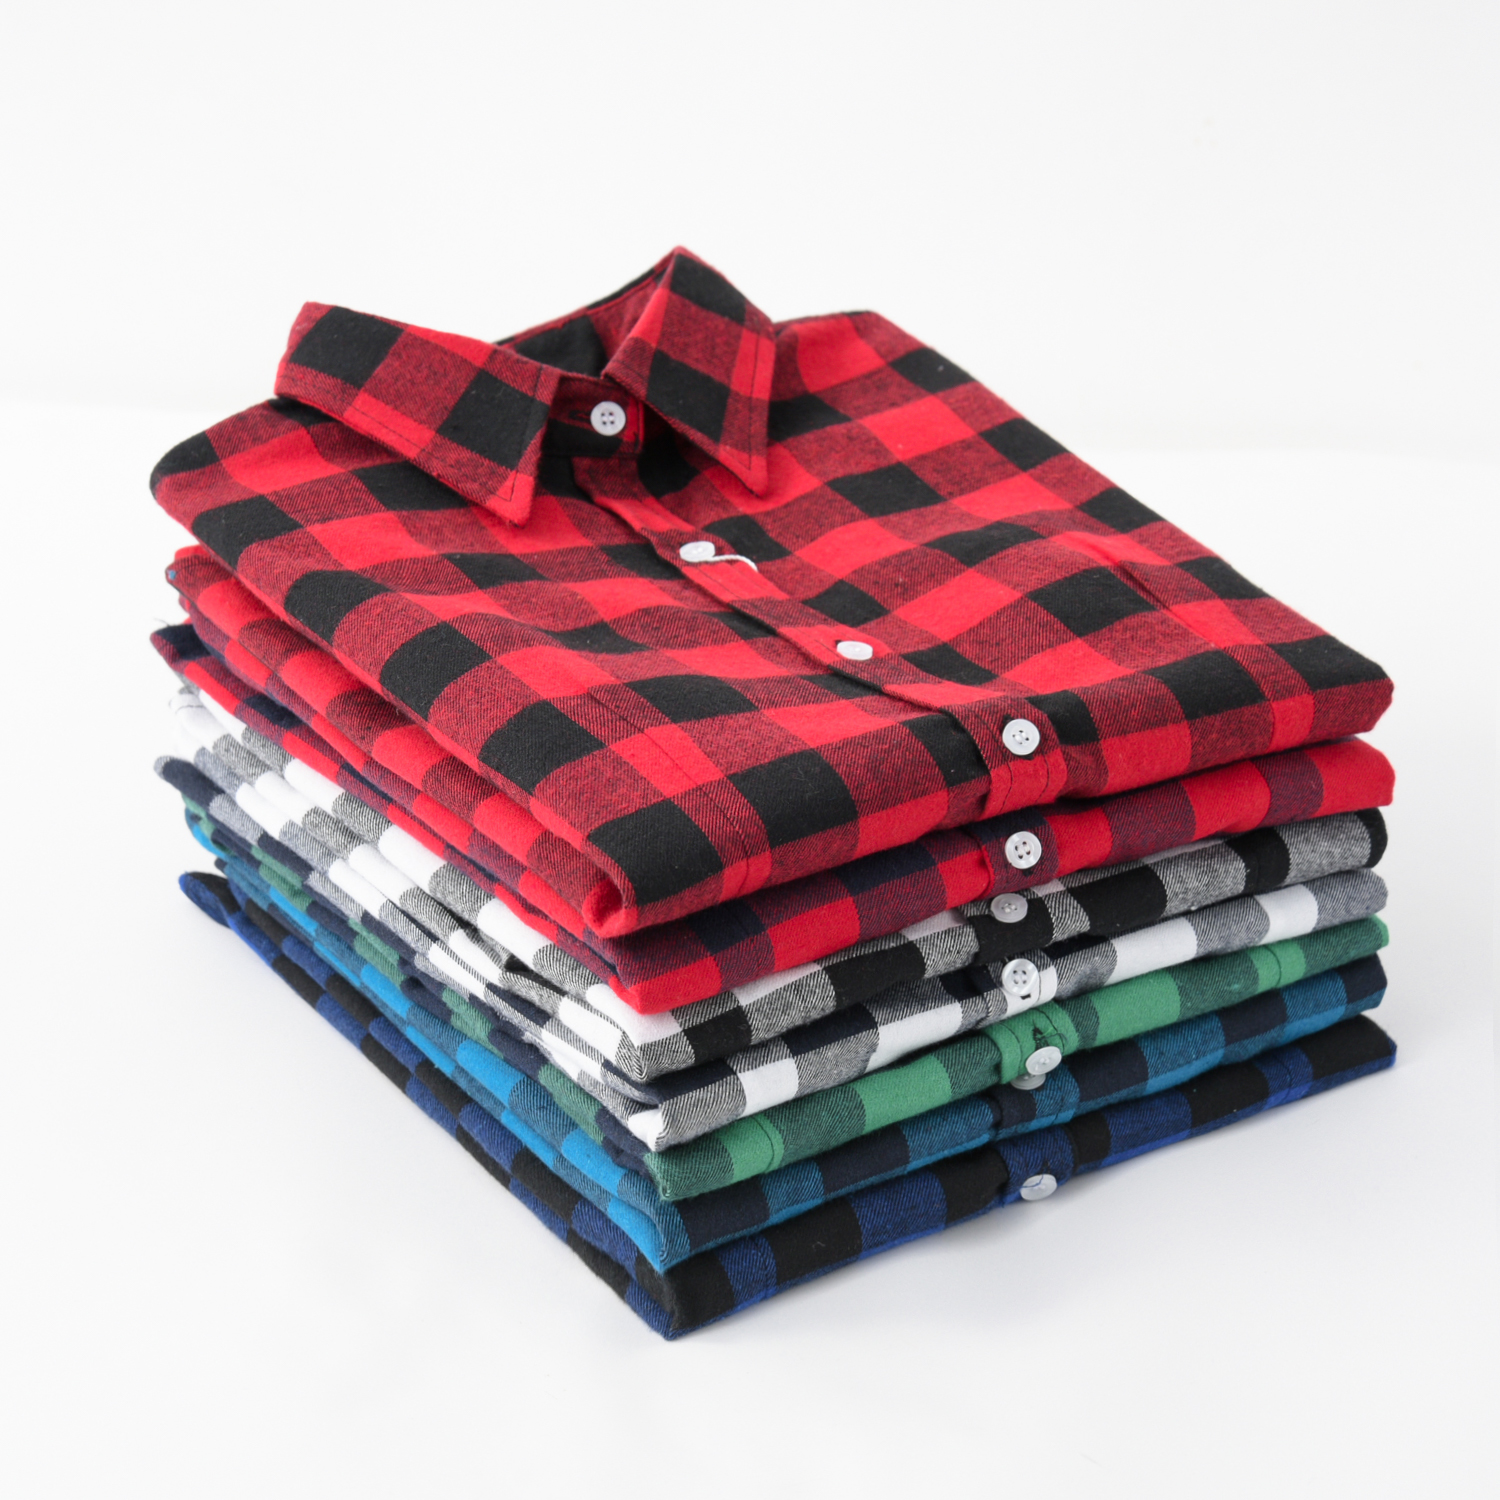 2019 New Brand Women Blouses Long Sleeve Shirts Cotton Red Black Flannel Plaid Shirt Casual Female Plus Size Blouse Tops Clothes